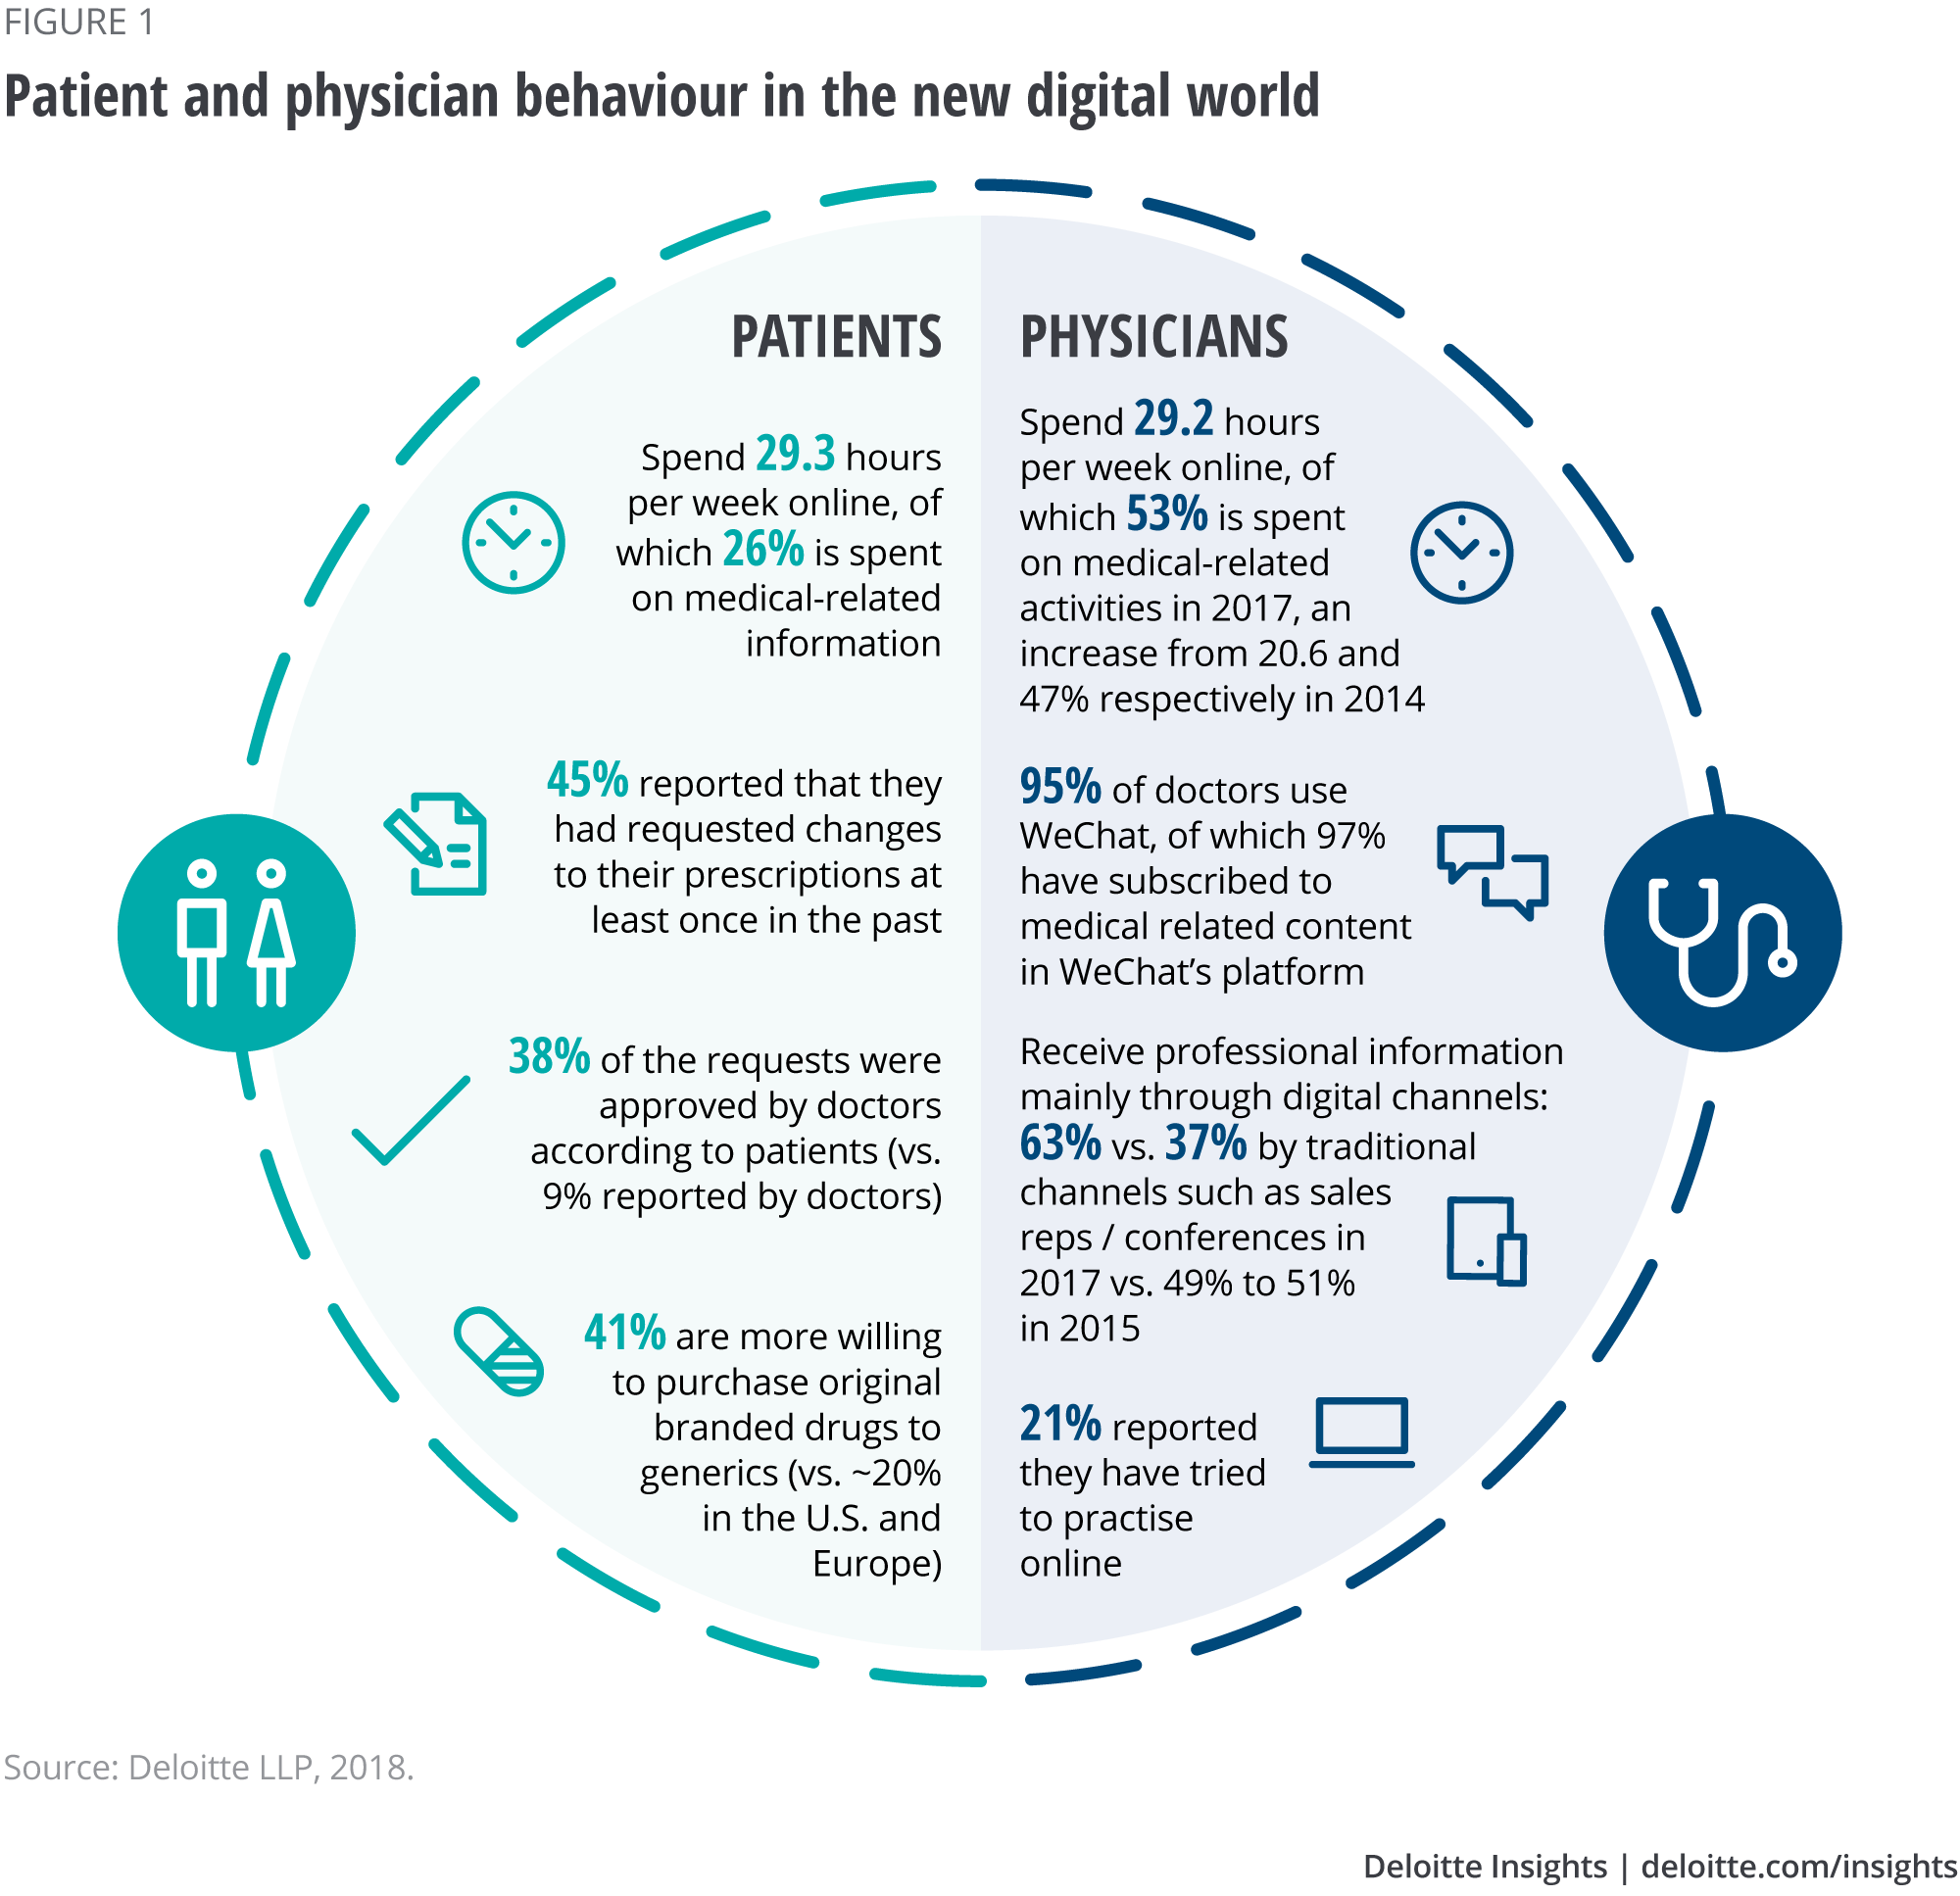 Patient and physician behaviour in the new digital world